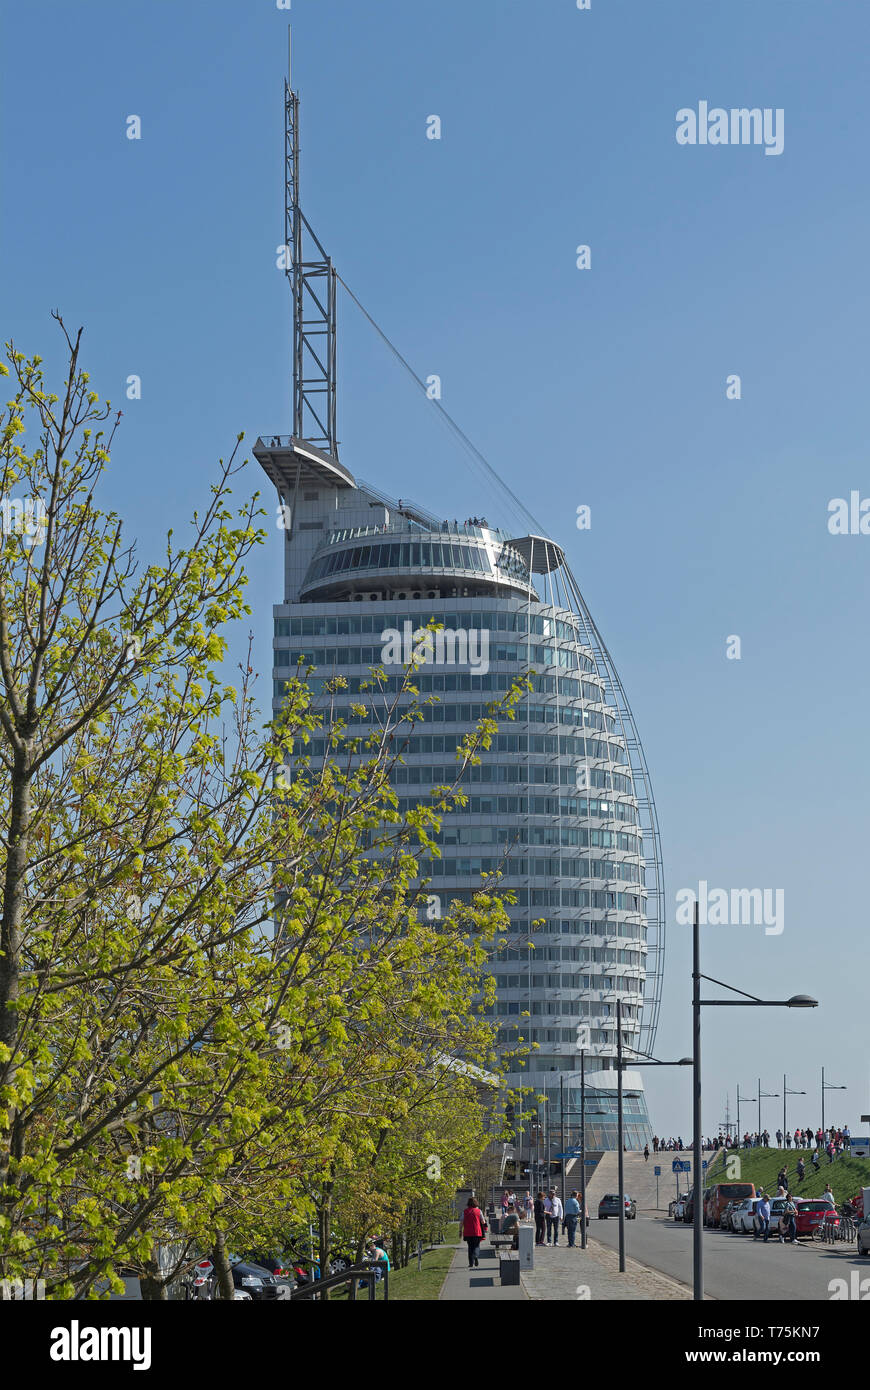 ATLANTIC Hotel Sail City, Bremerhaven, Bremen, Germany - Stock Image